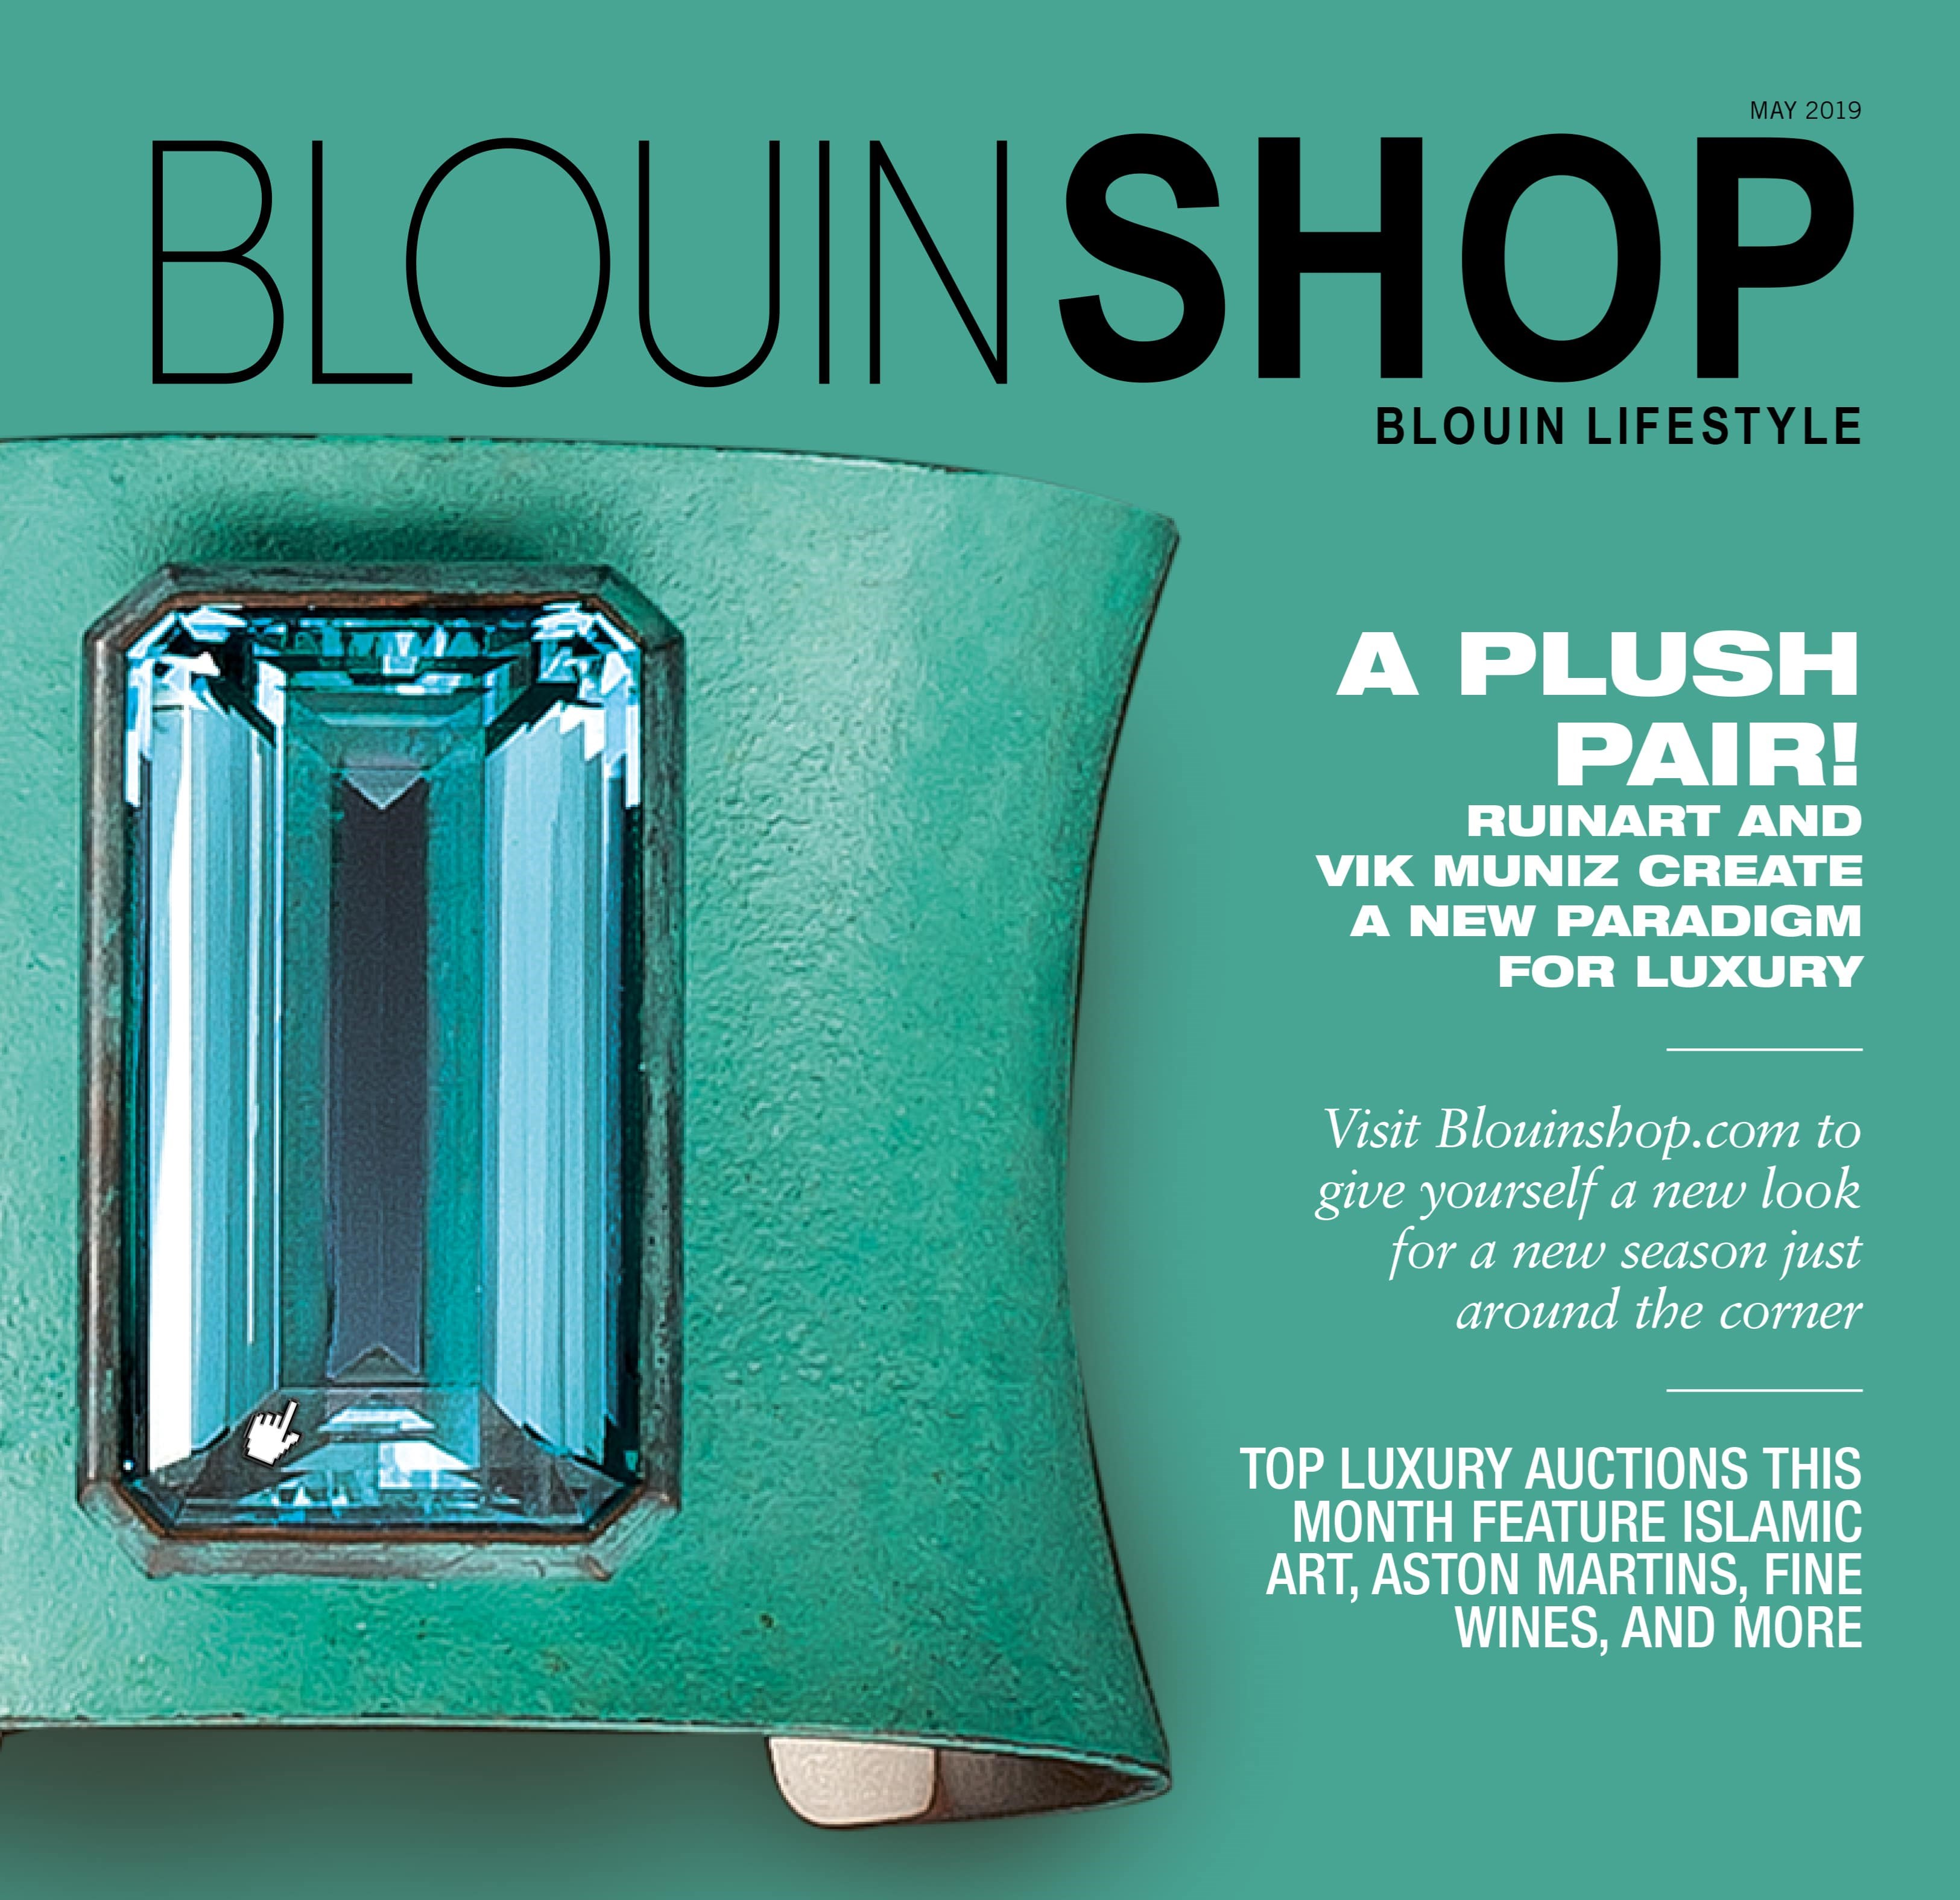 Best Price for Blouin Shop Magazine Subscription